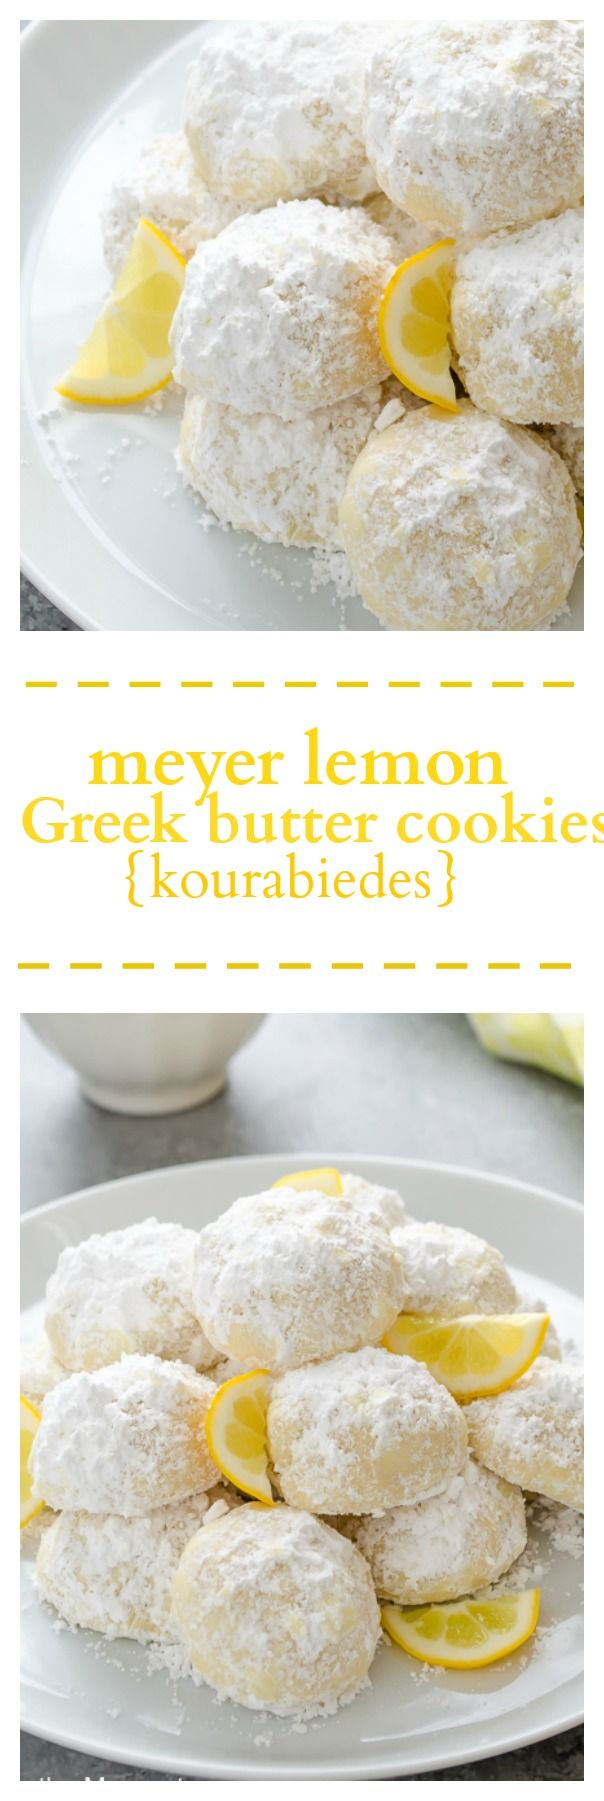 meyer-lemon-greek-butter-cookies-kourabiedes-collage-flavorthemoments.com - Flavor the Moments